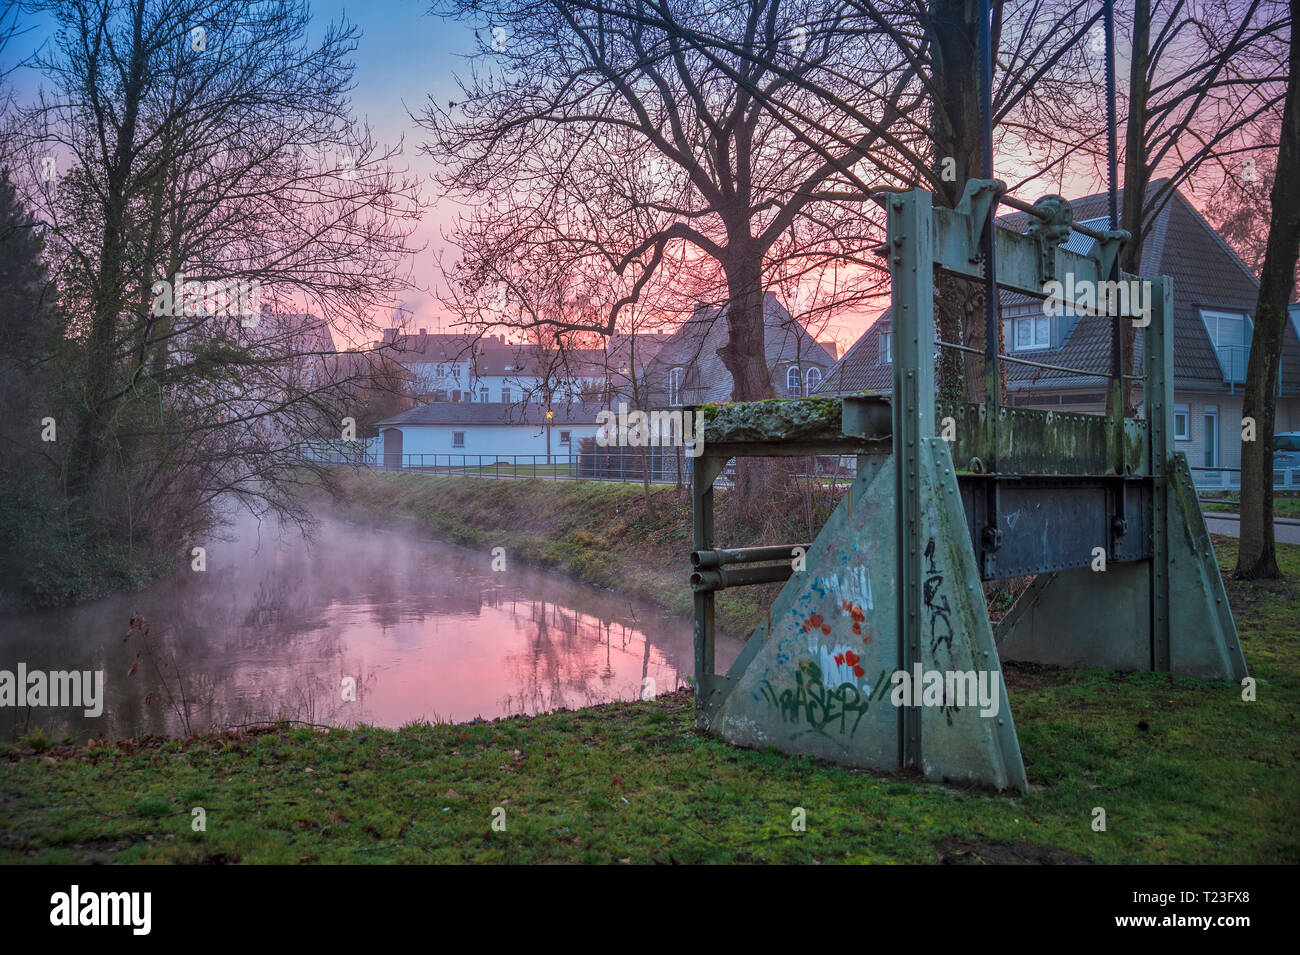 Germany, Grevenbroich, Erft river bend at weir of former 'Eisener Muehle' in the evening - Stock Image